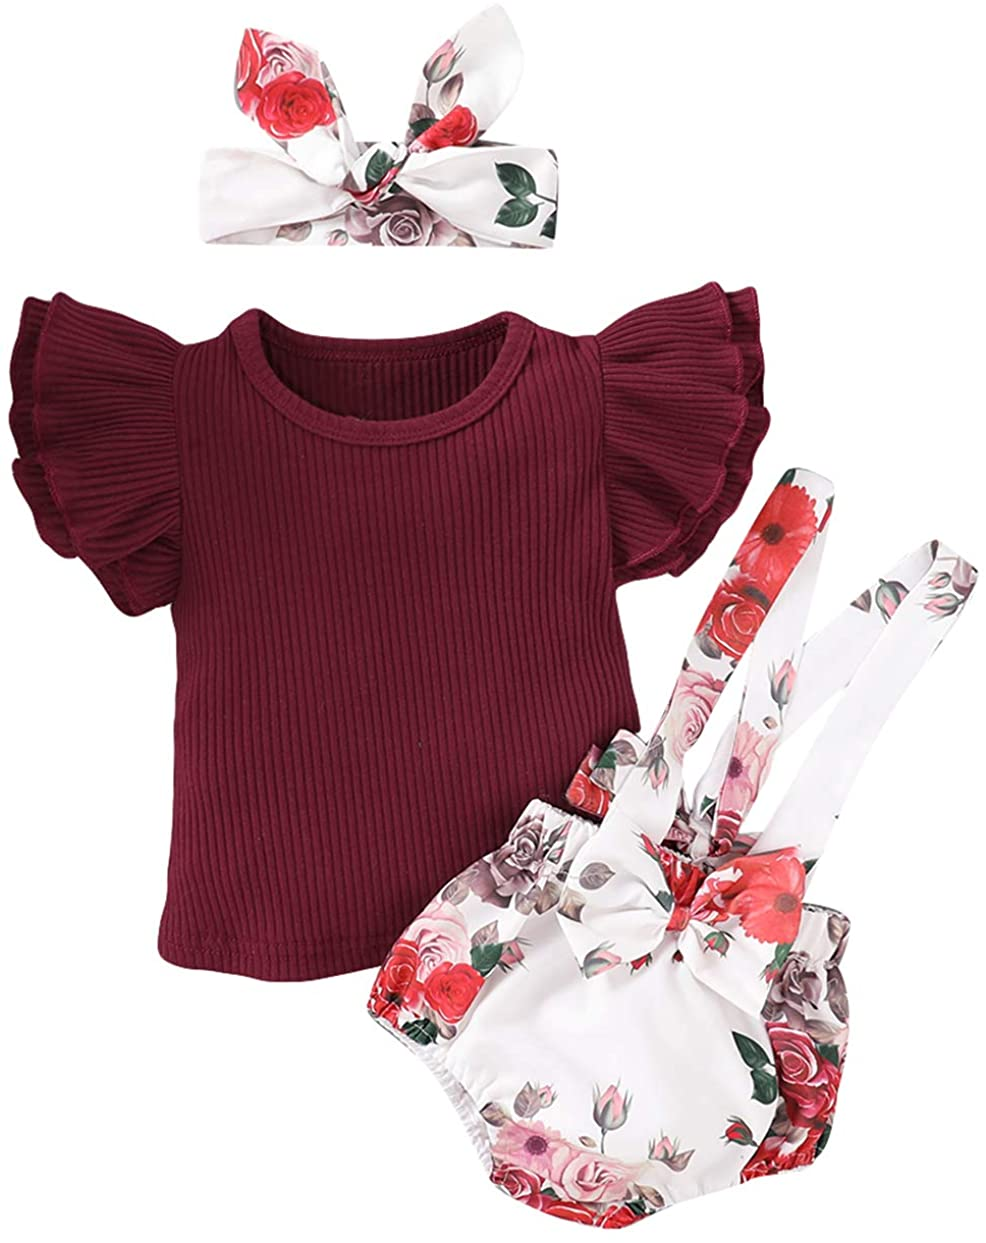 MTSLYH Infant Baby Girl Ruffle Ribbed Shirt+Floral Bowtie Suspender Shorts+Headband Outfit Set